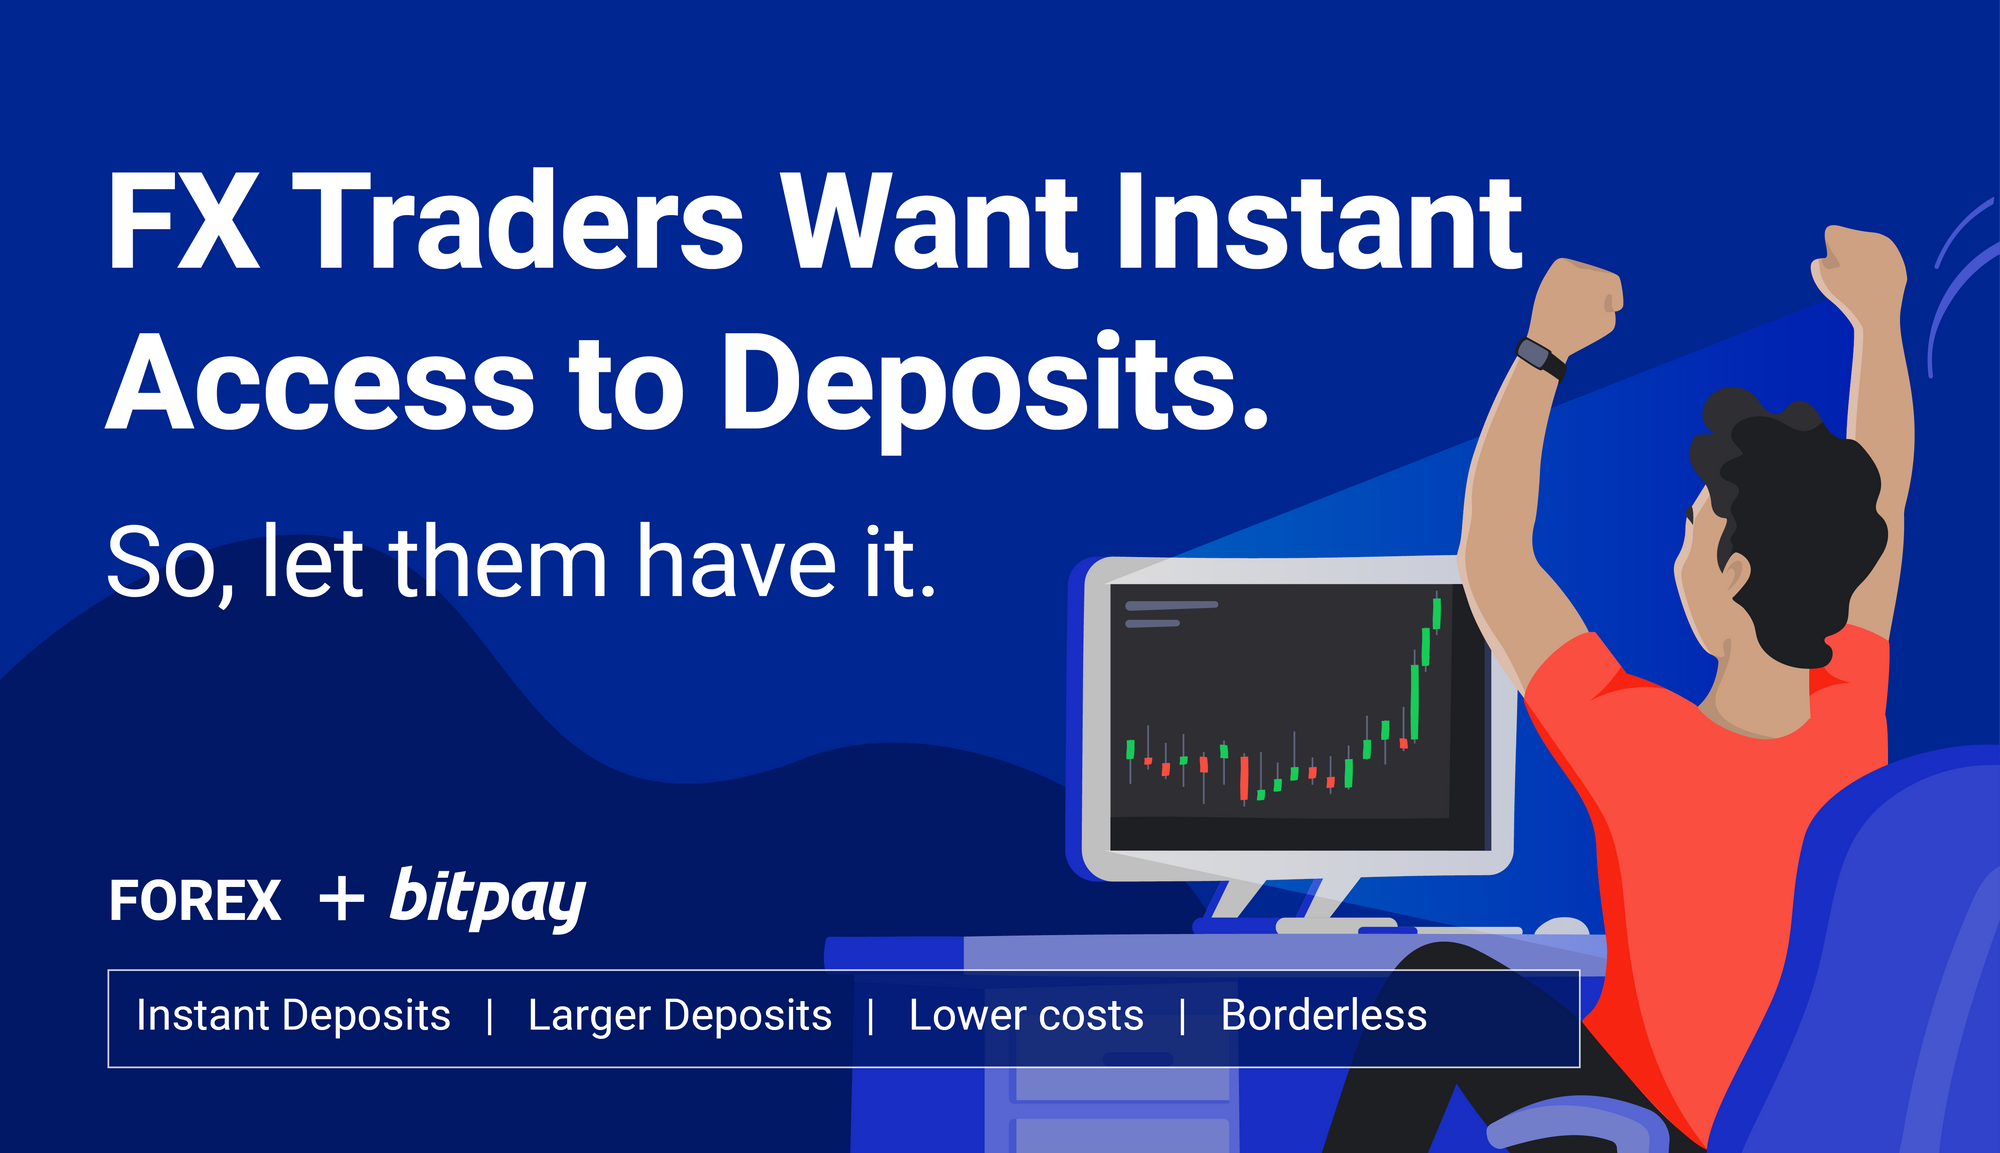 Forex brokers attract traders using BitPay for instant Bitcoin deposits